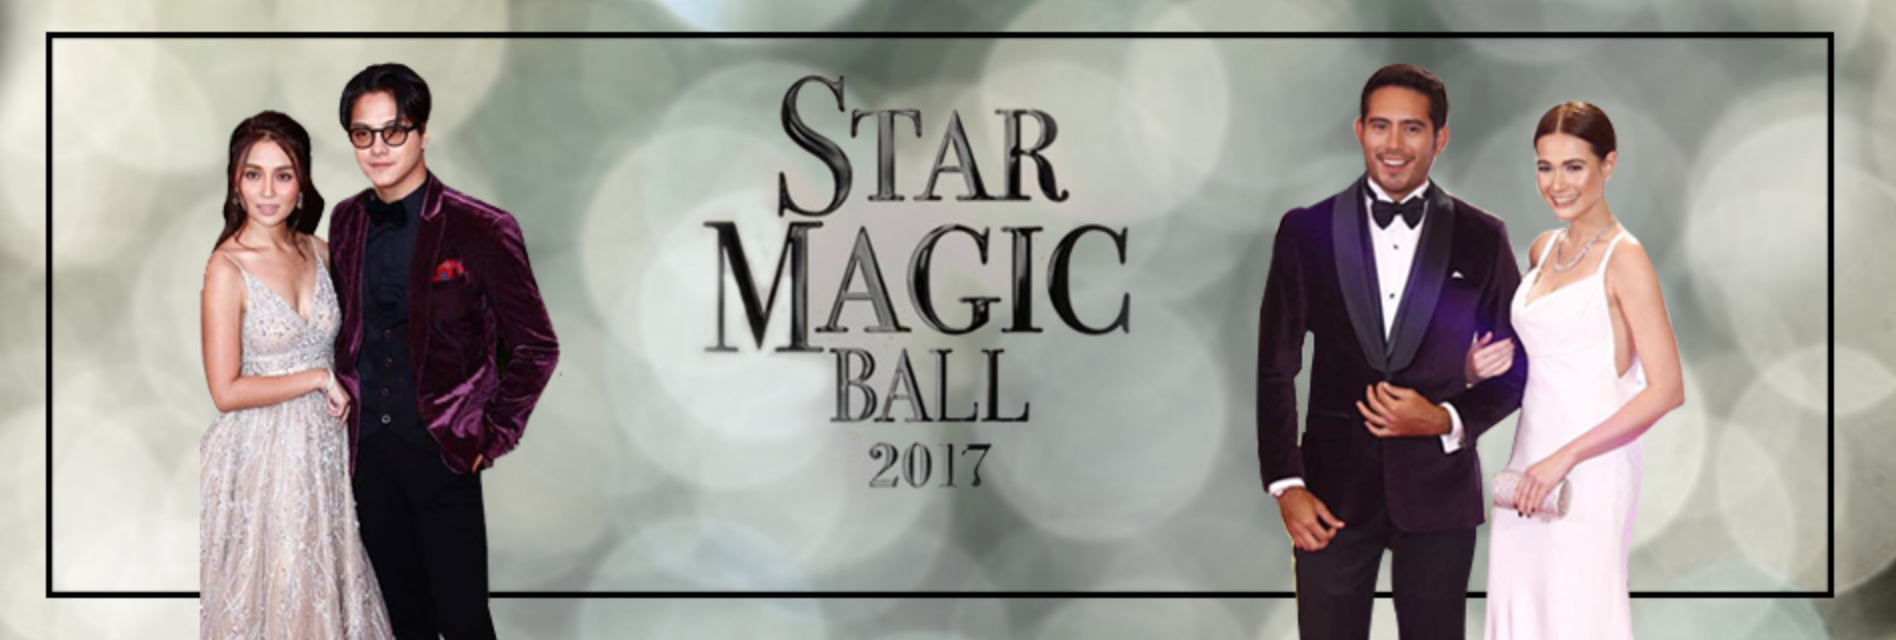 Biggest event of the year Star Magic Ball 25th Anniversary